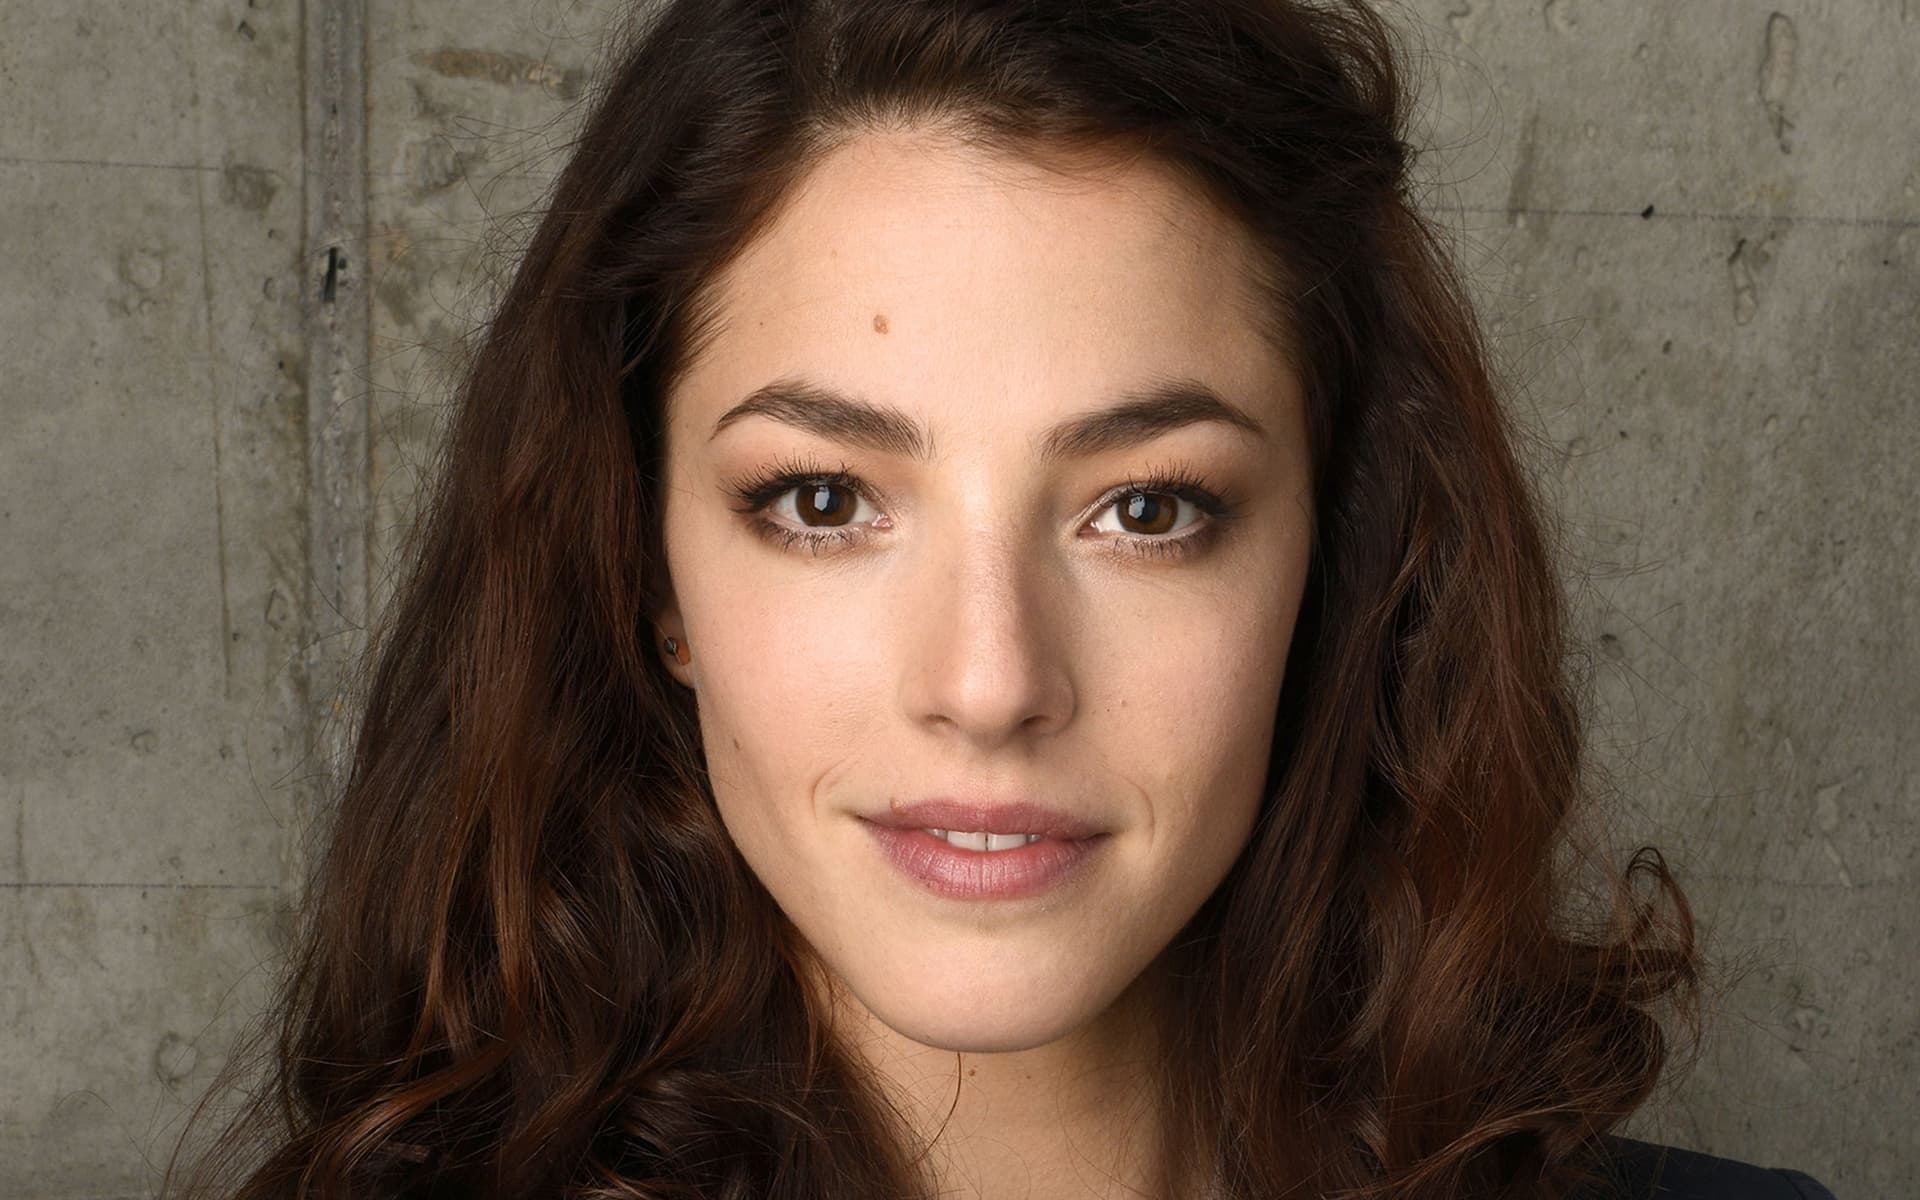 Olivia Thirlby Wallpapers High Resolution and Quality Download